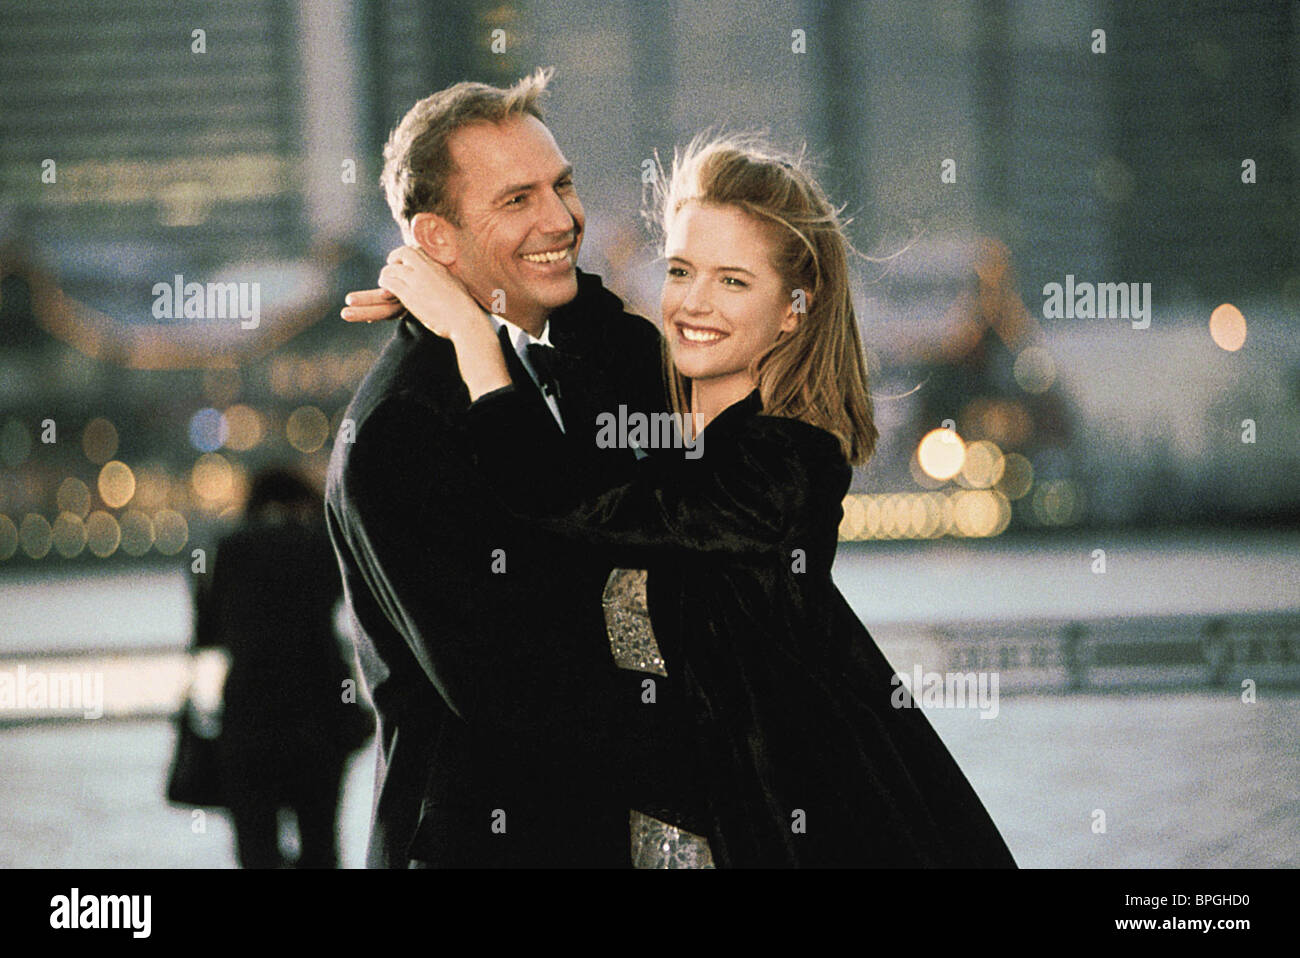 042bce837c90d KEVIN COSTNER   KELLY PRESTON FOR LOVE OF THE GAME (1999 Stock Photo ...